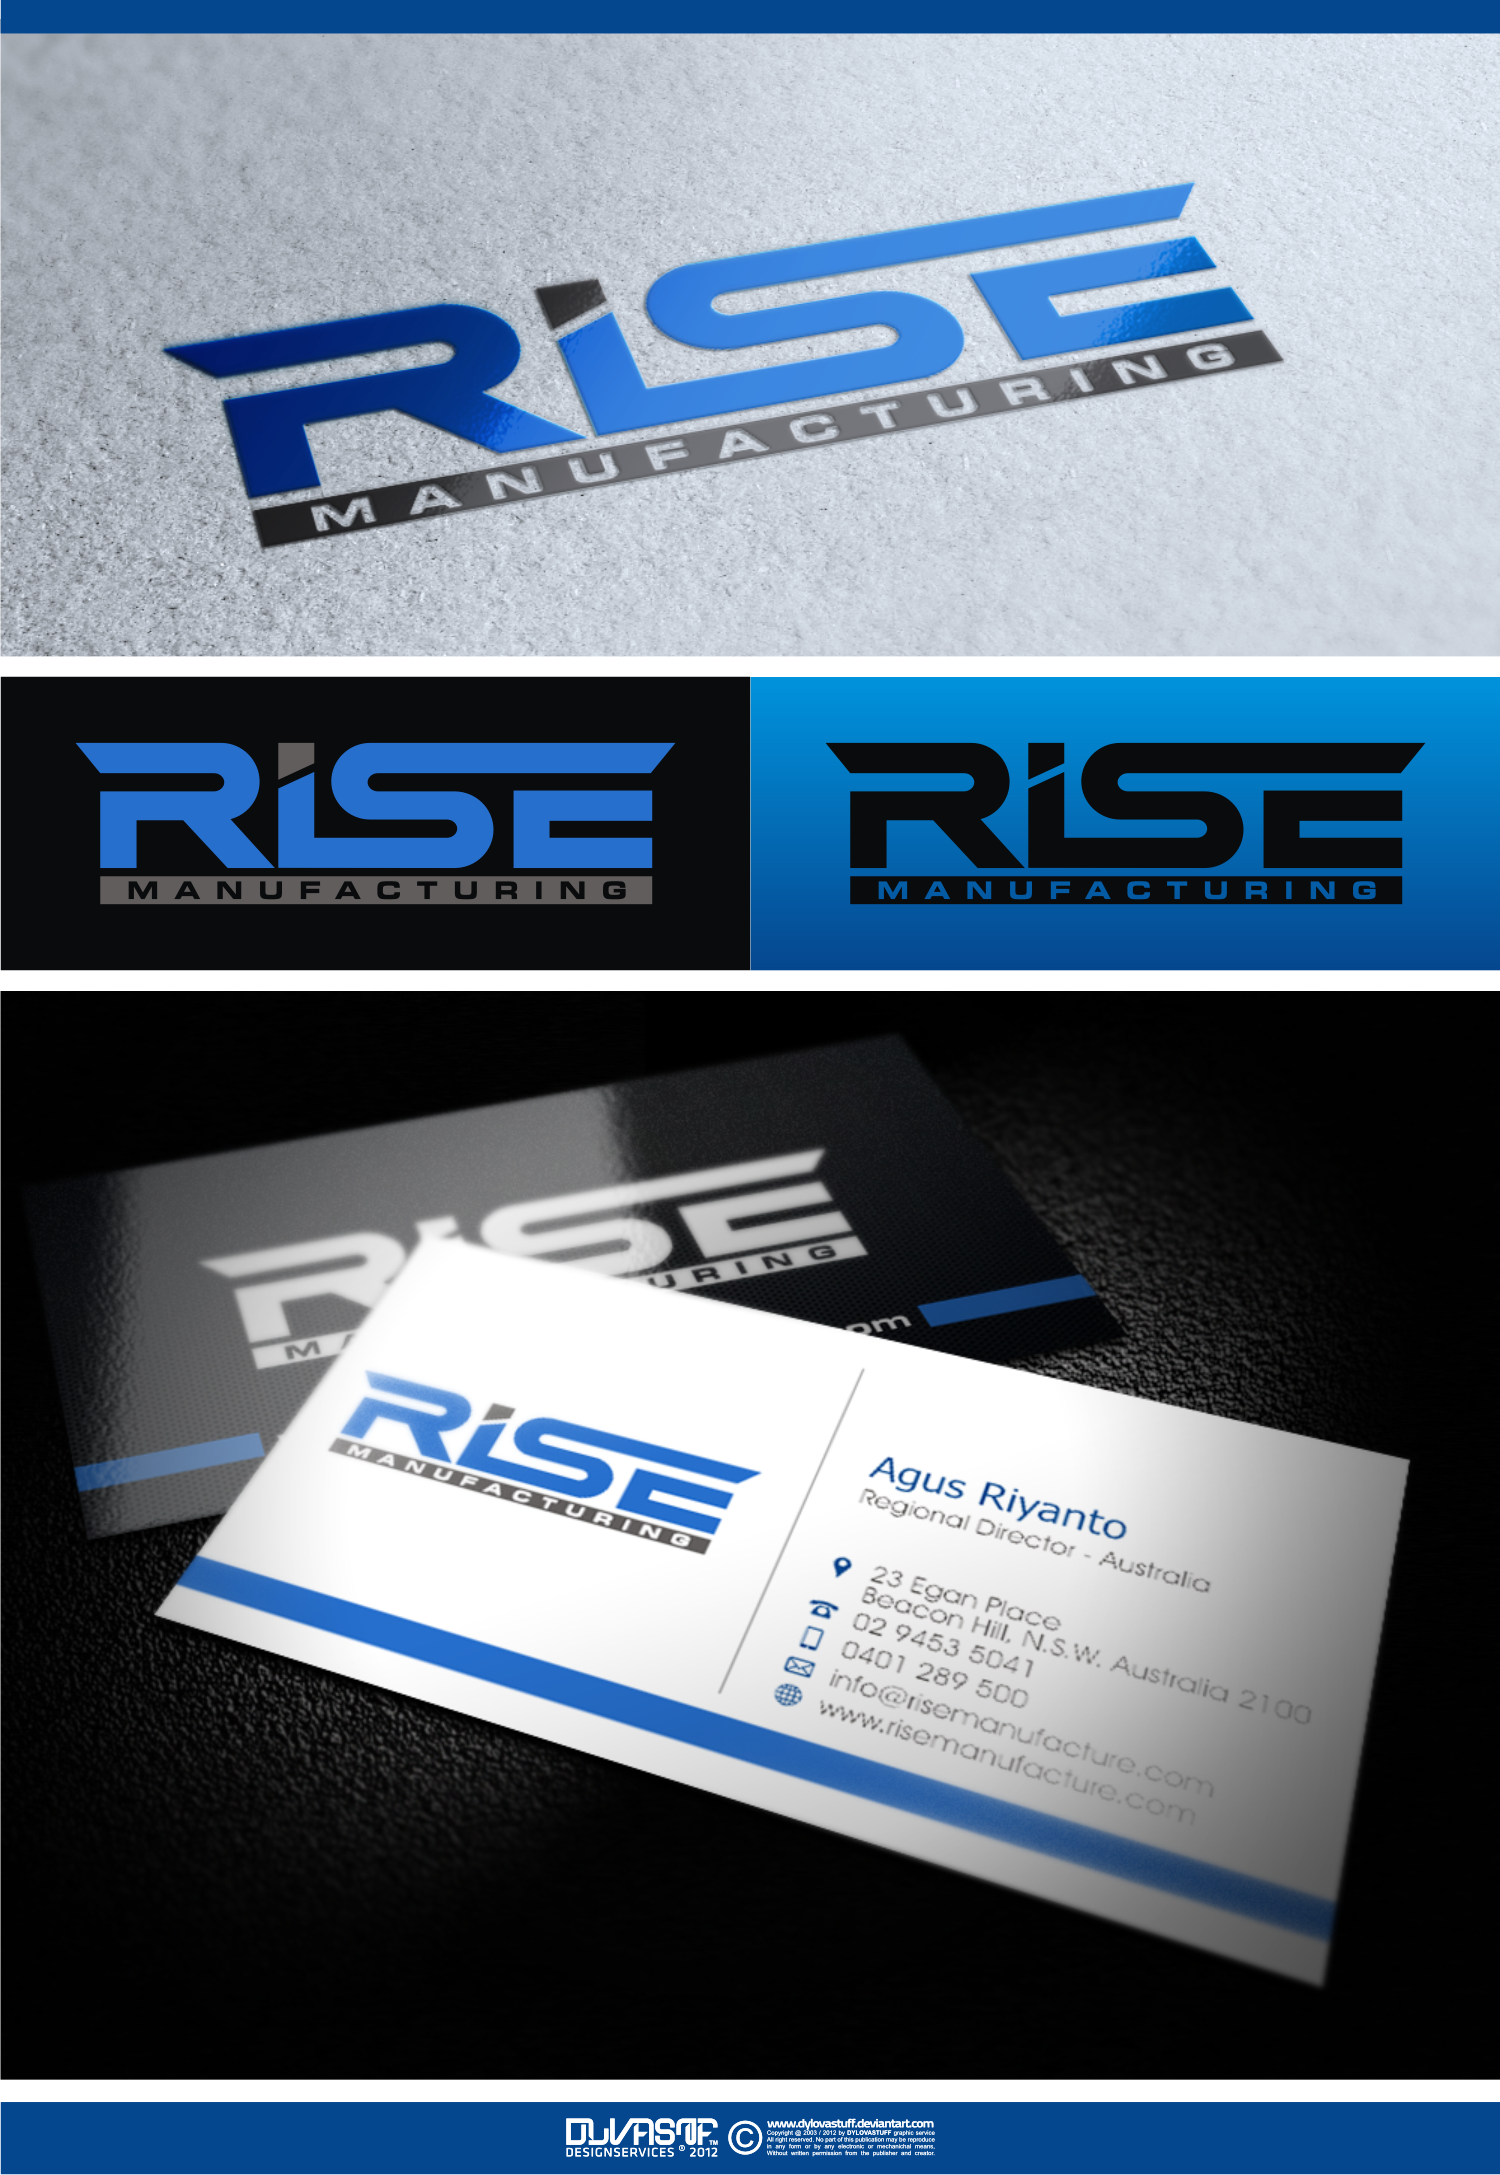 Help make an awesome logo for Rise Manufacturing